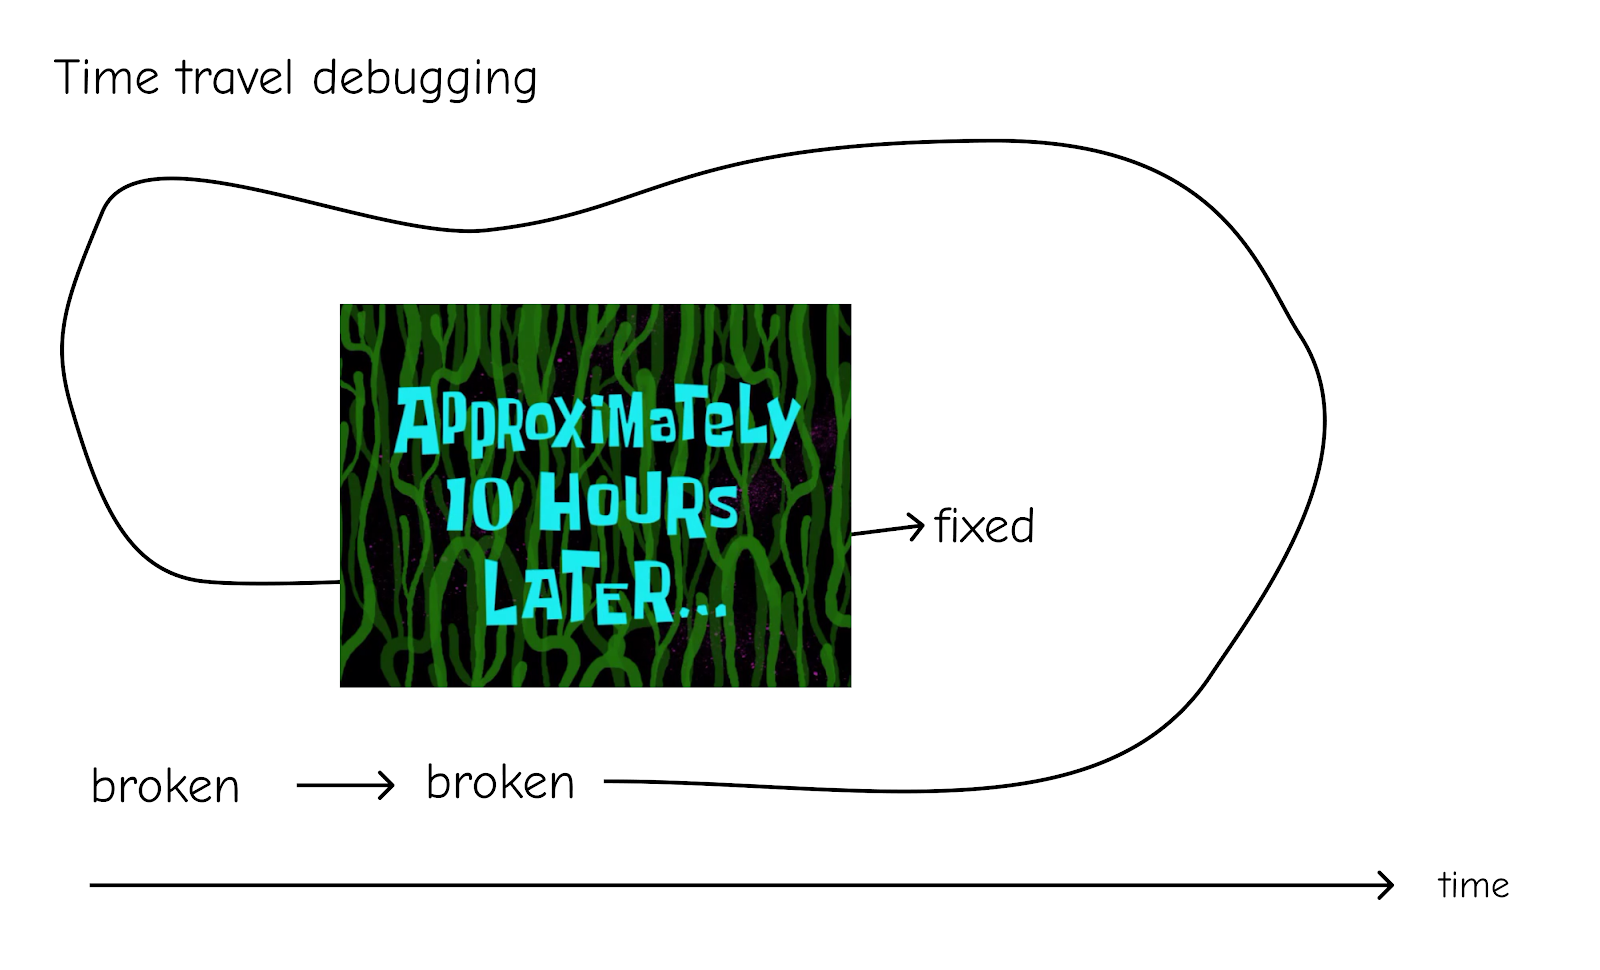 Funny illustration of time travel debugging with a warped timeline axis